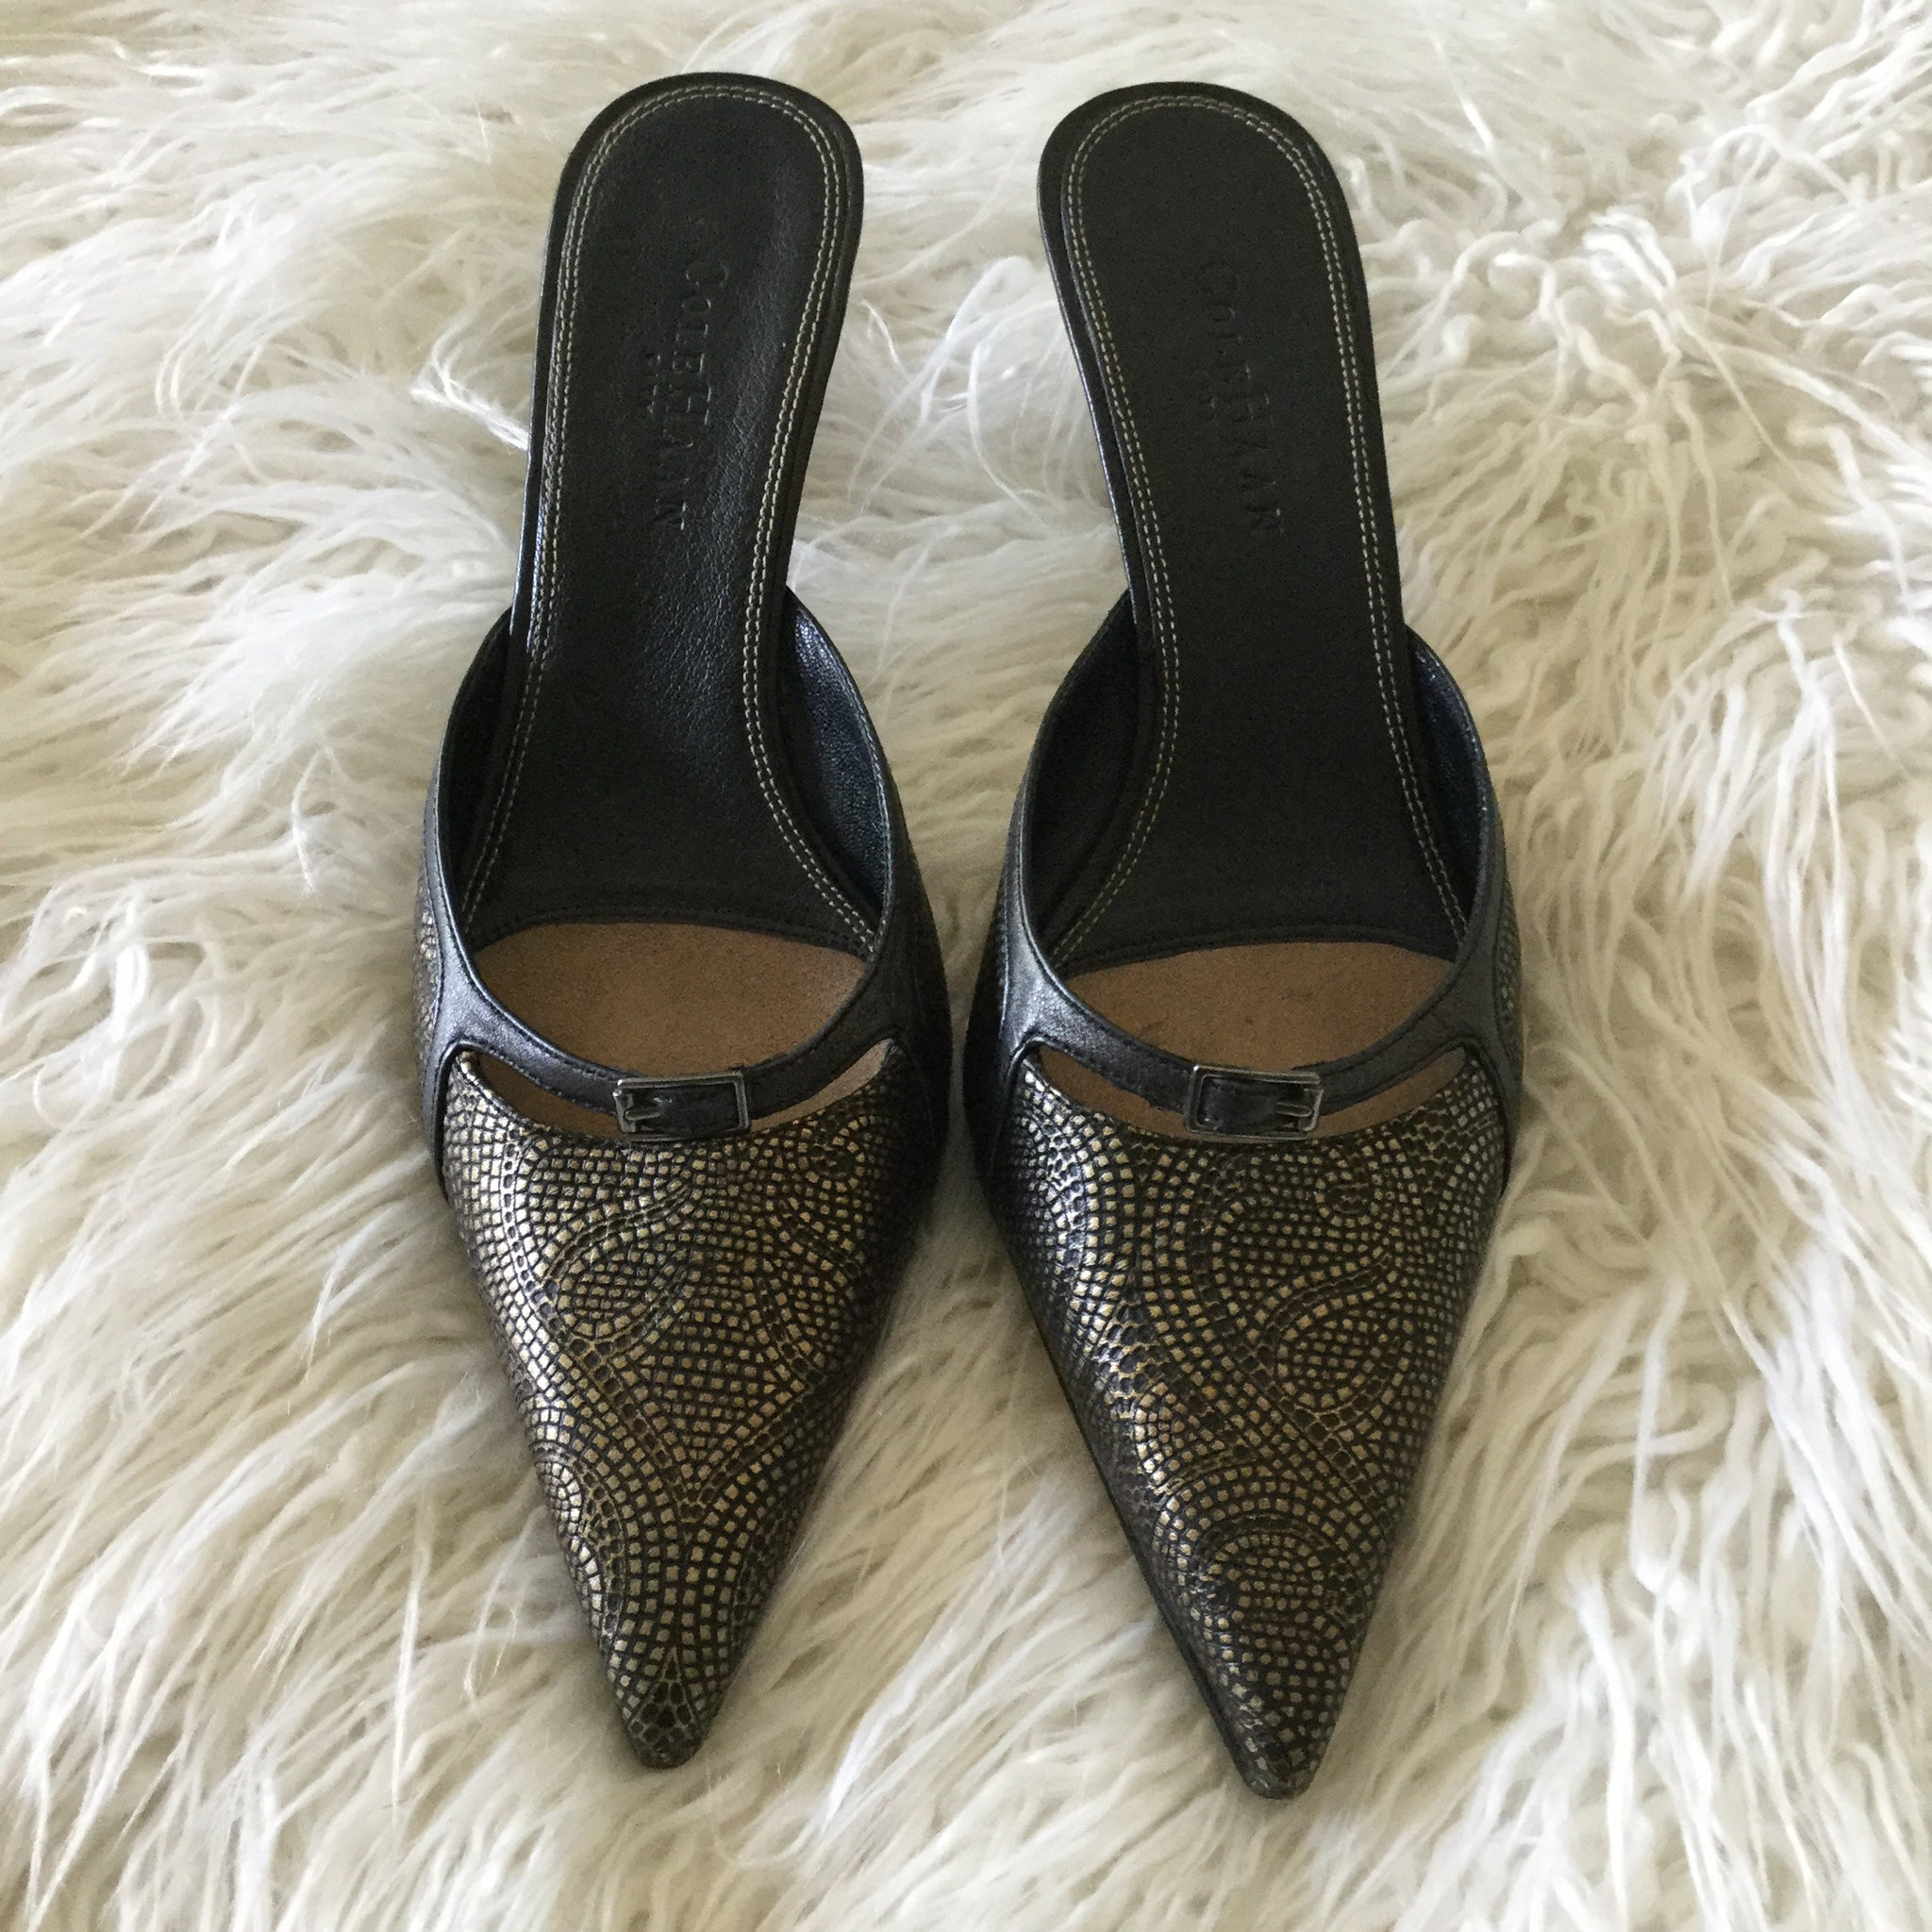 Cole Haan Black & Gold Leather Pointy Toe Kitten Heel Mules Size 7